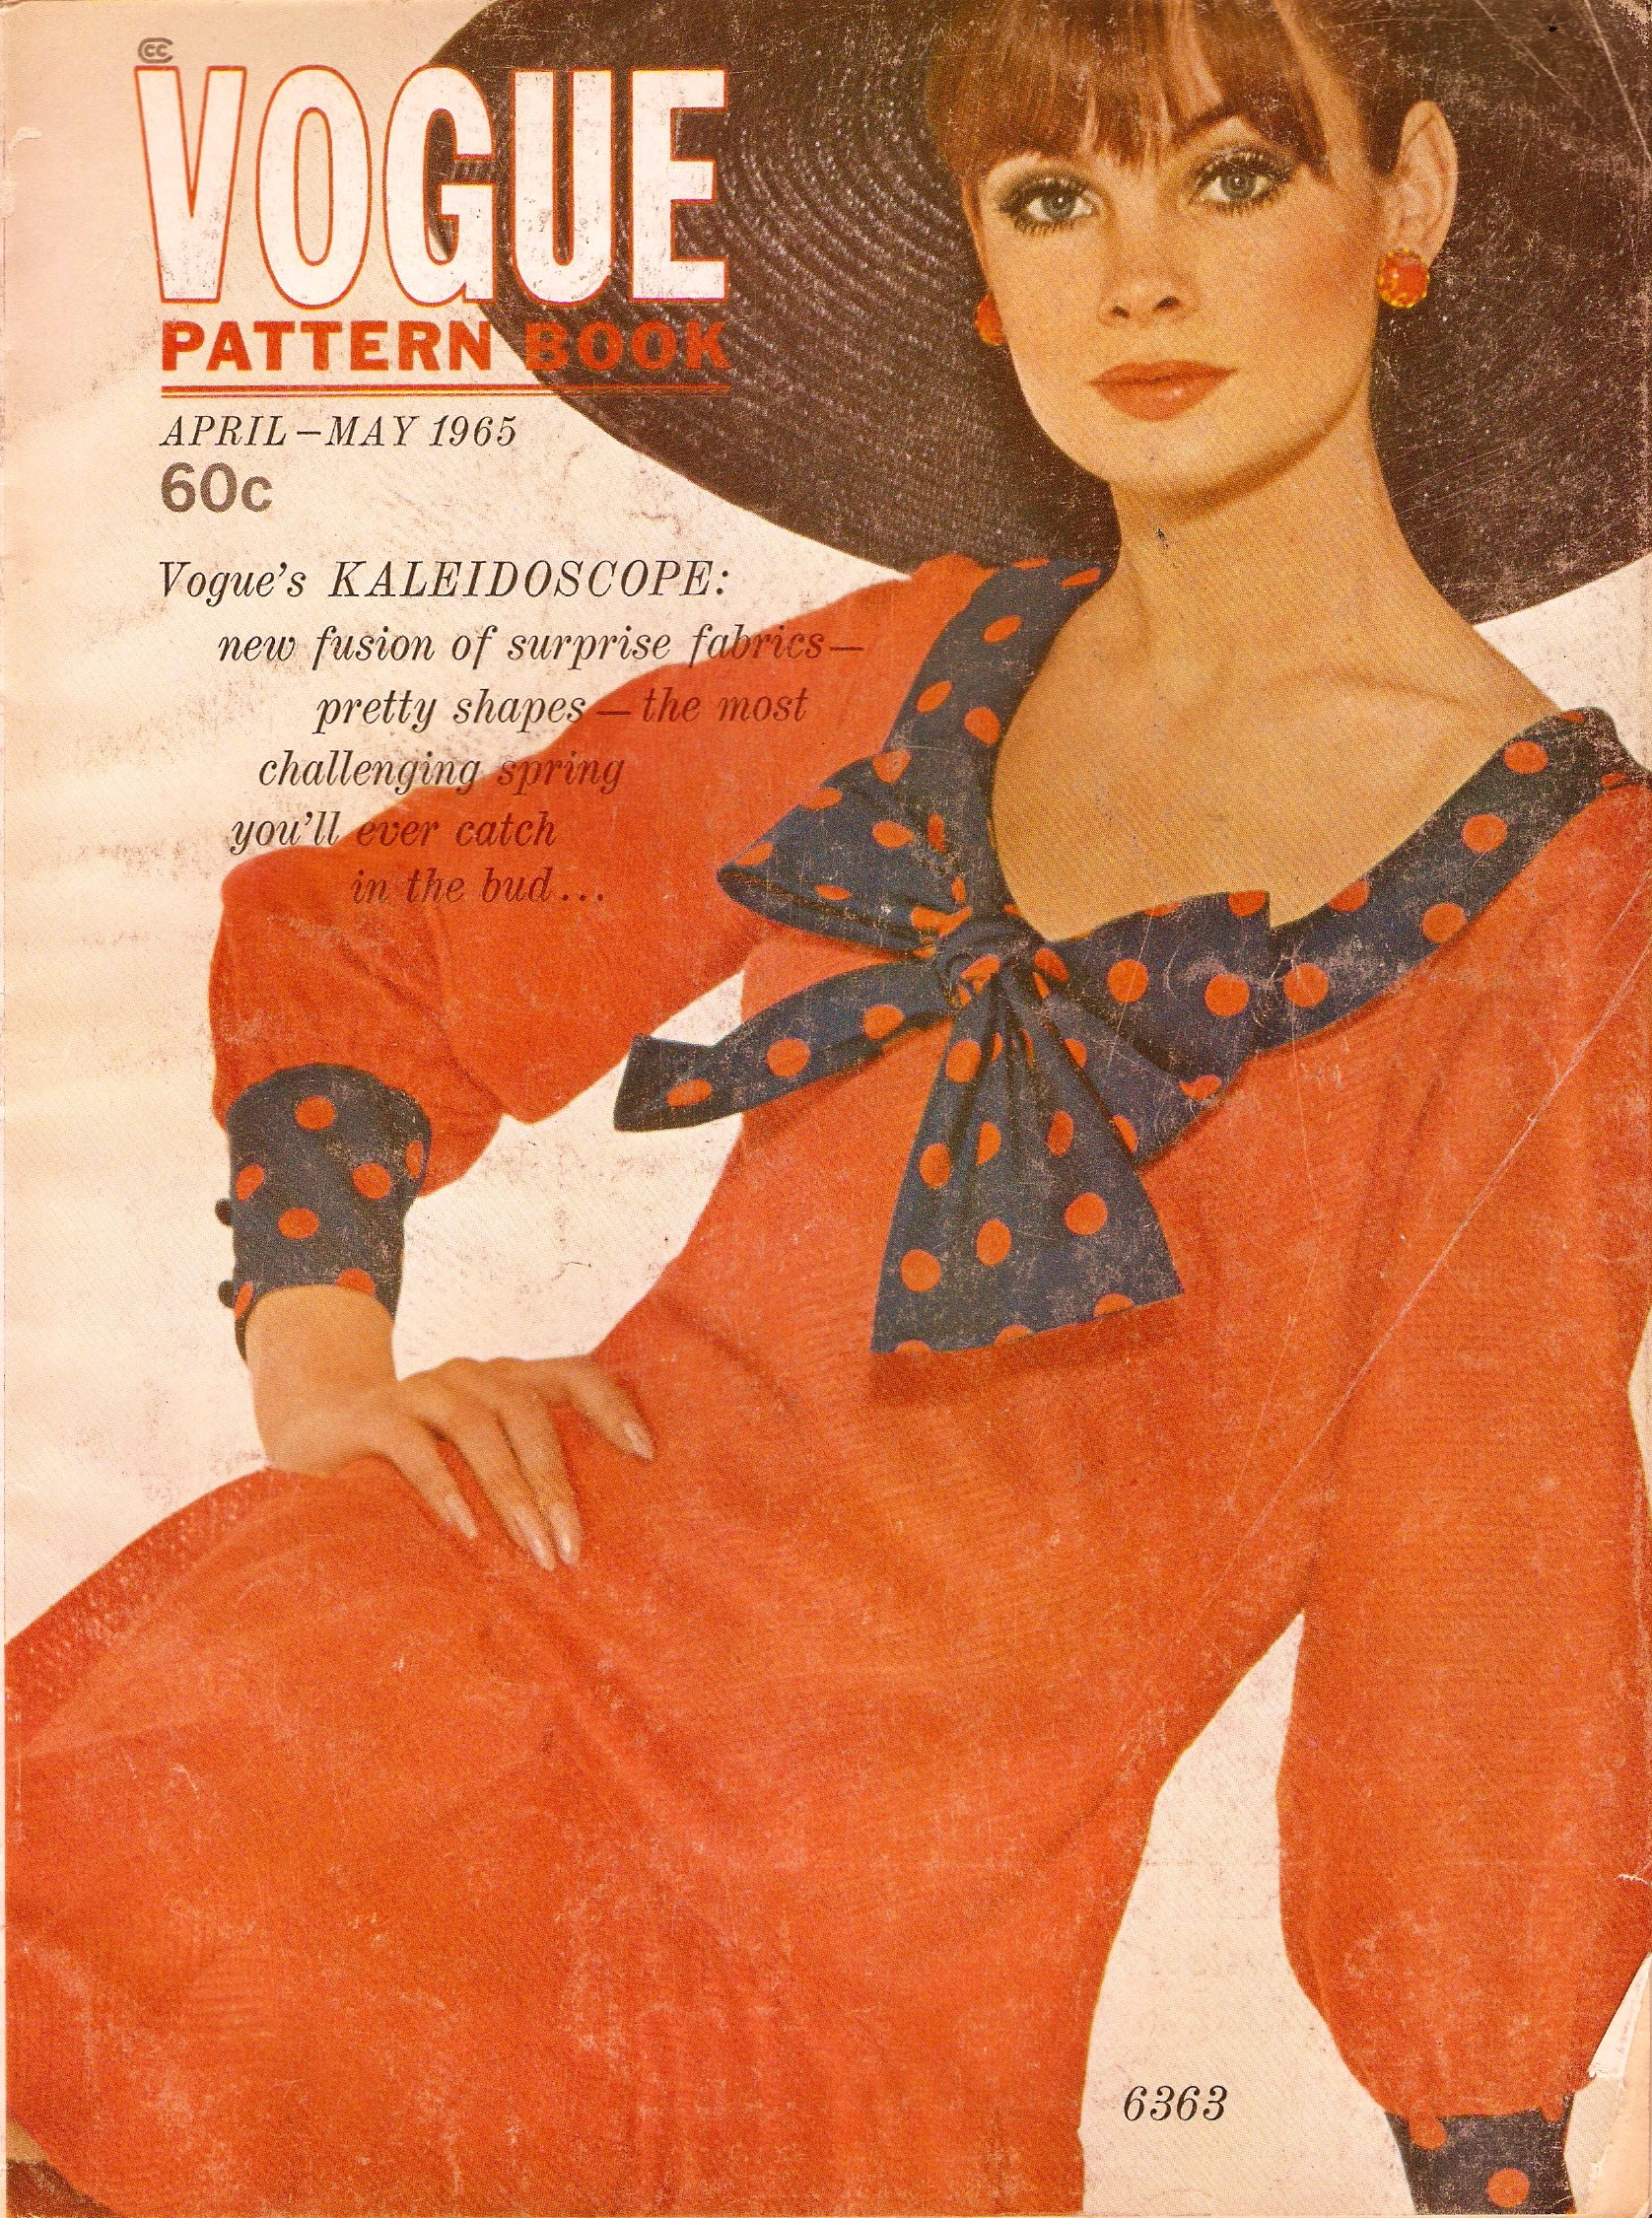 Vogue Pattern Book April/May 1965